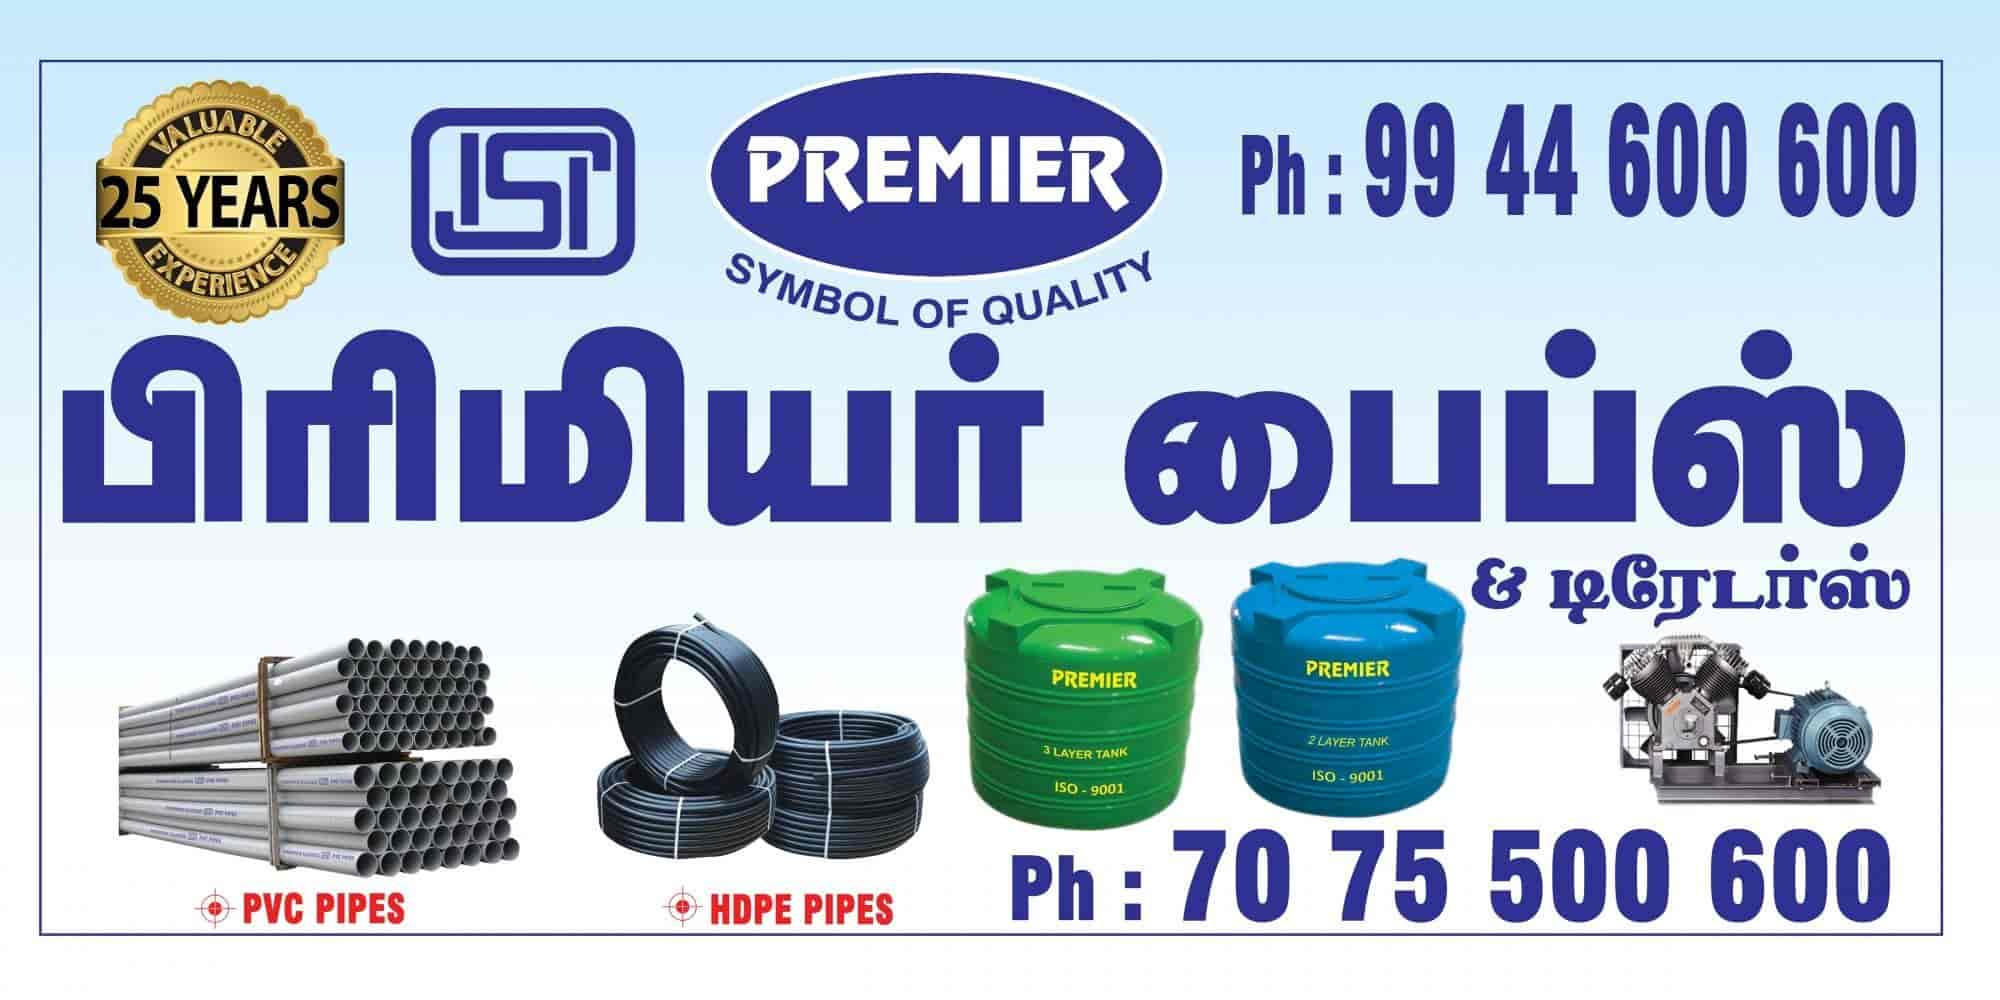 Premier Pipes And Traders, Palladam Tirupur - Pipe Plastic